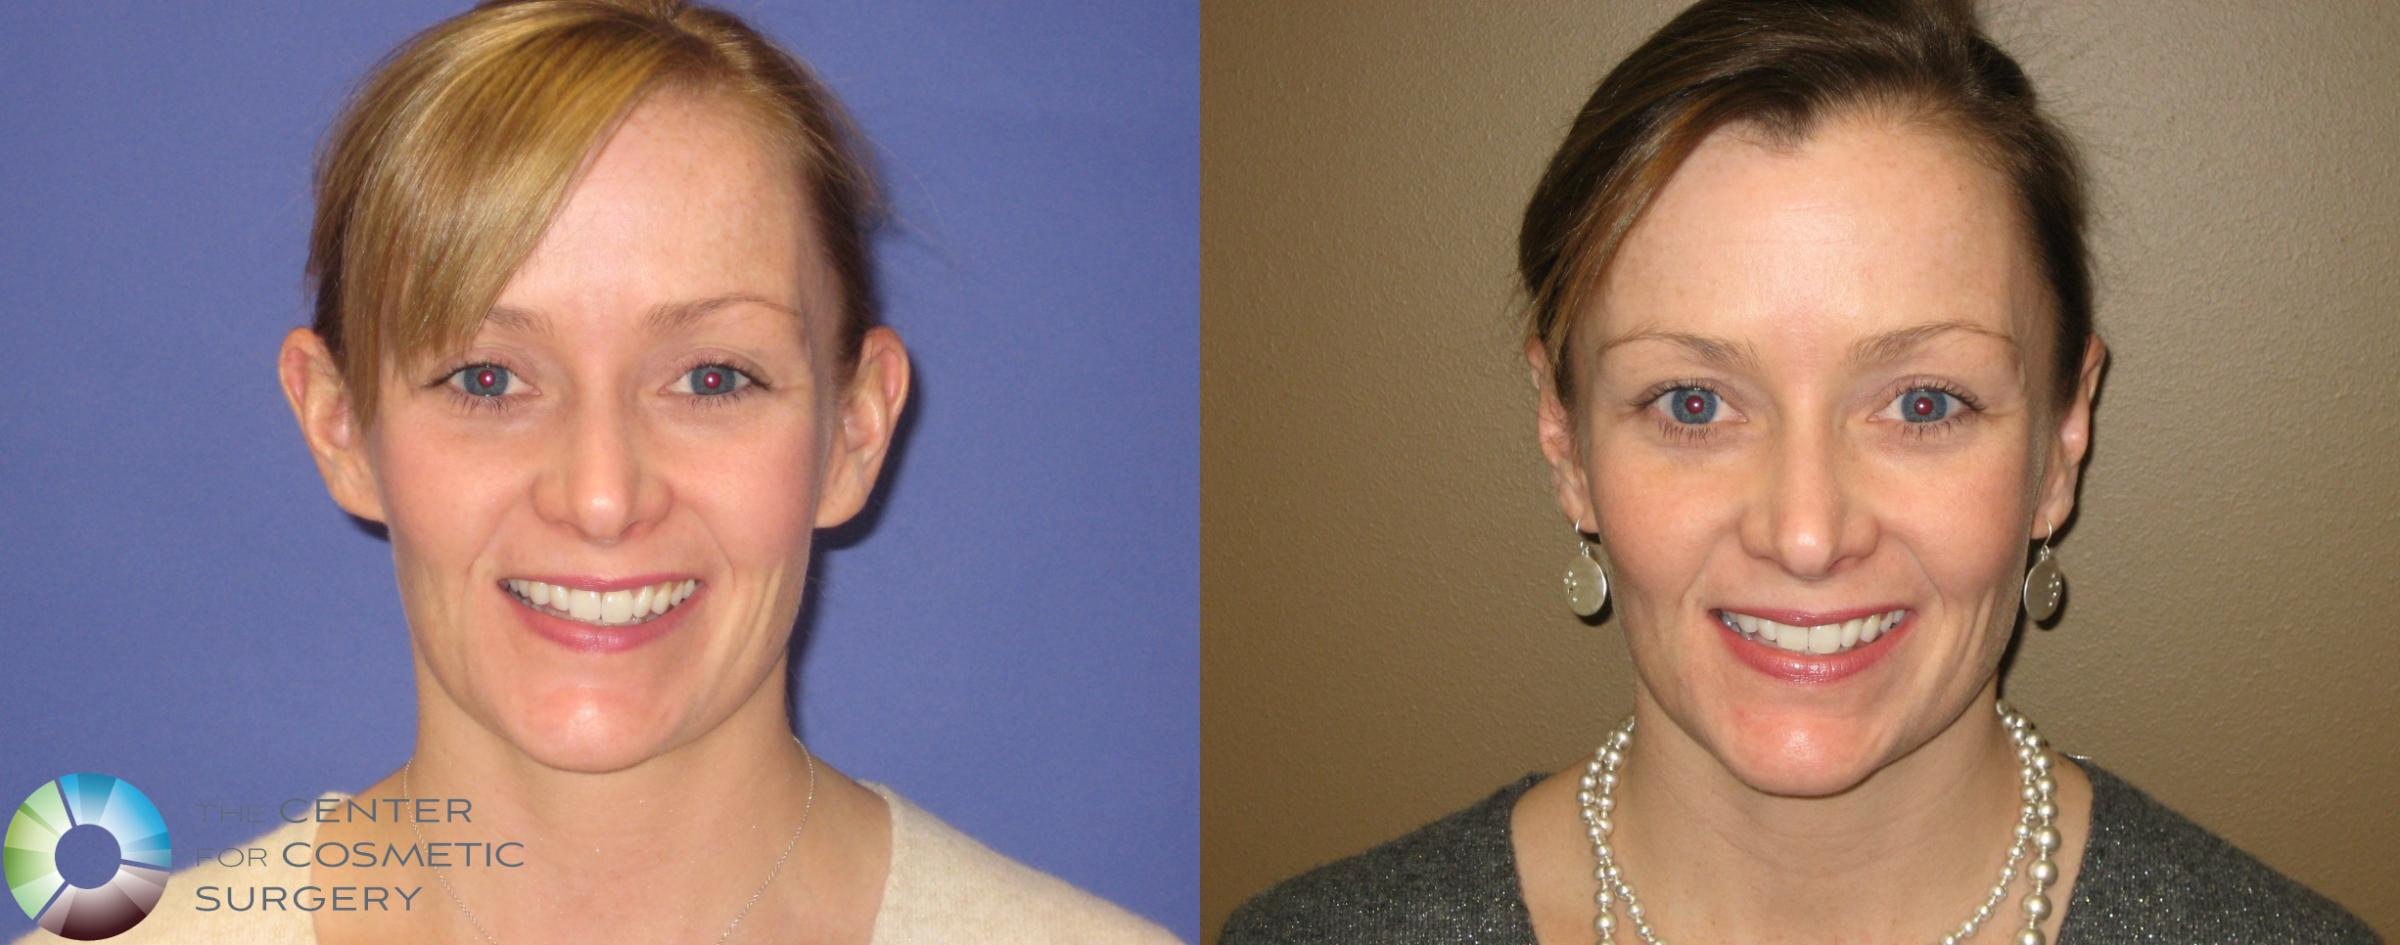 Ear Surgery Case 283 Before & After View #1 | Denver & Golden, CO | The Center for Cosmetic Surgery